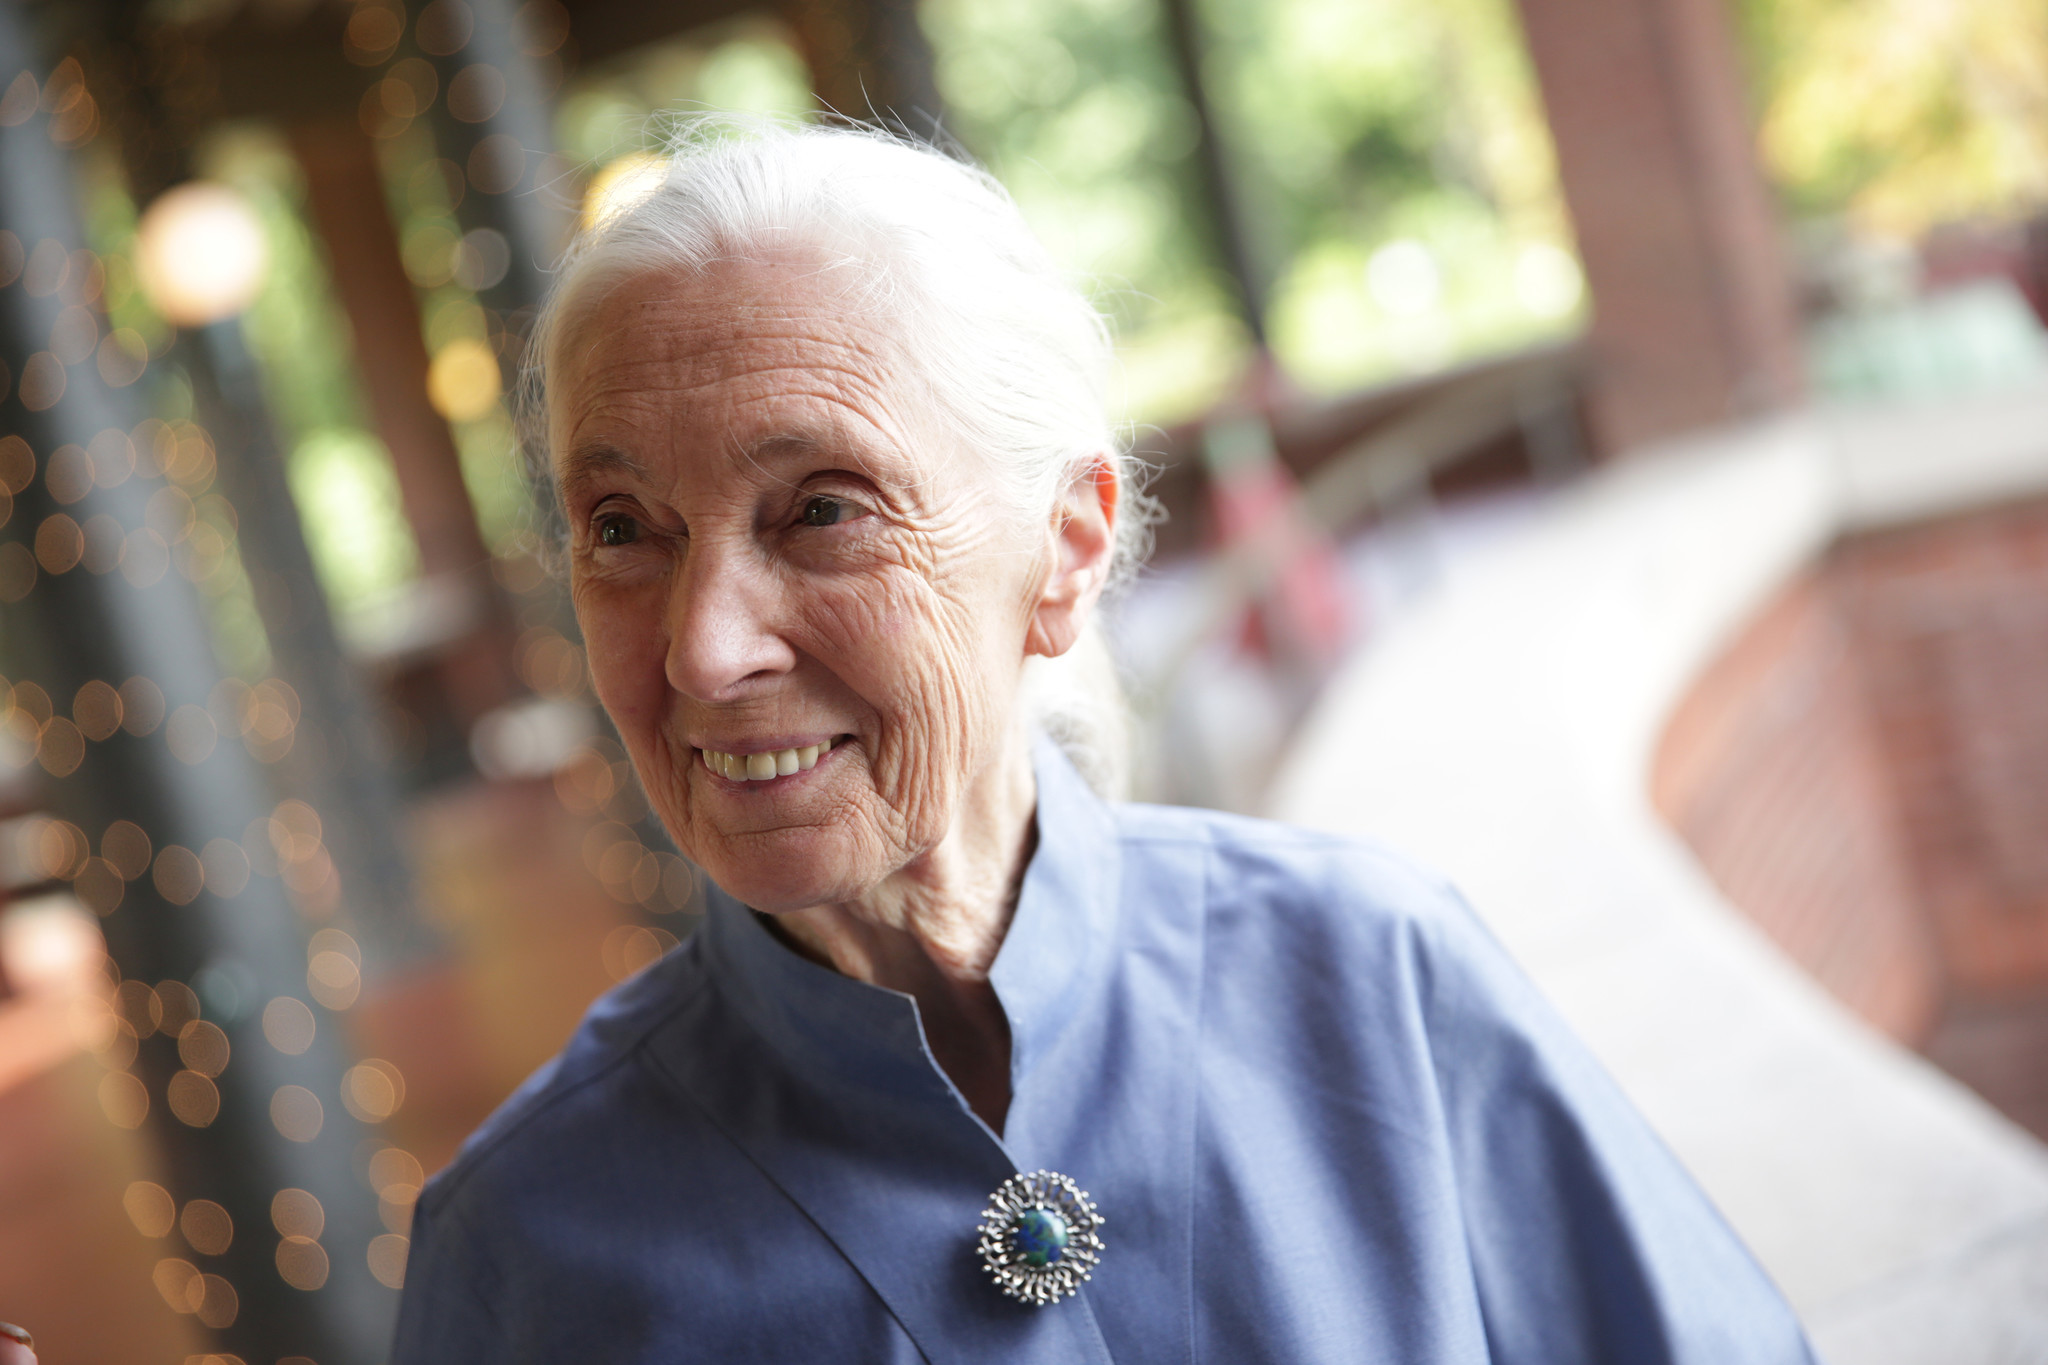 Living In A Van >> Jane Goodall, in Chicago to talk about chimps, stresses urgency - Chicago Tribune